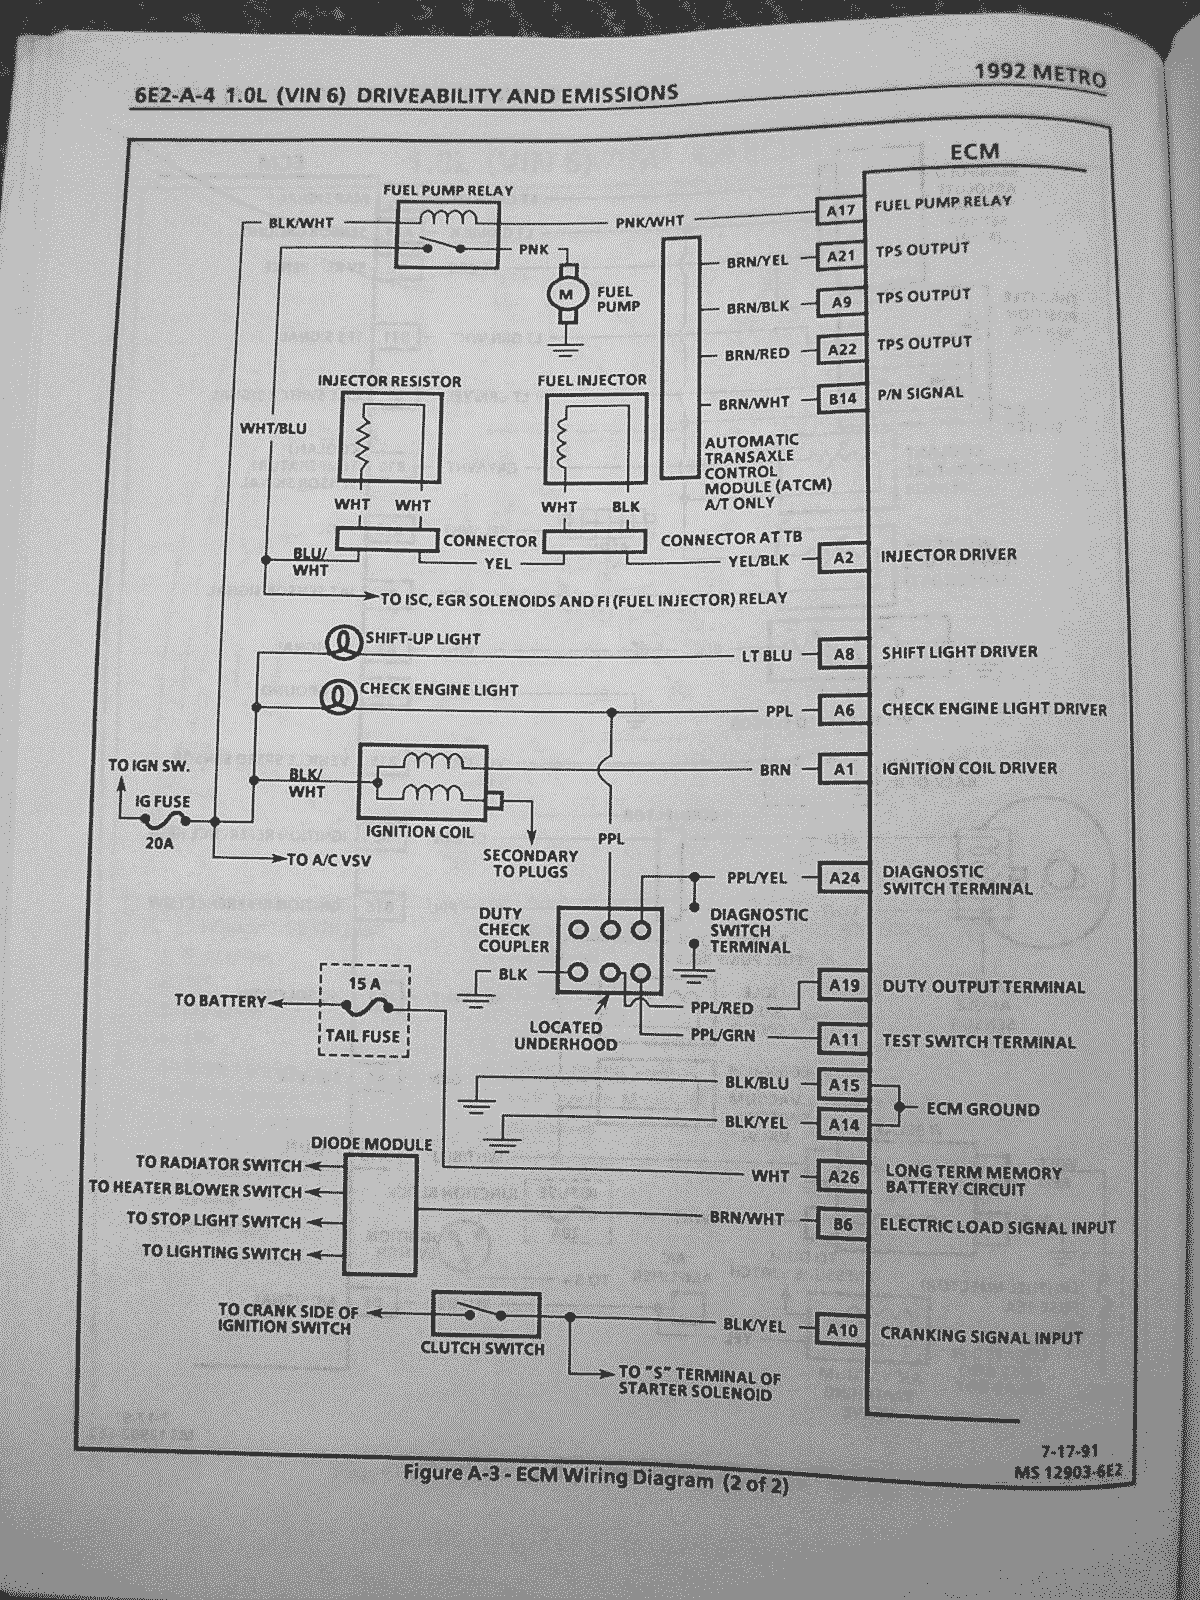 6e2 a 4 geo metro and suzuki swift wiring diagrams metroxfi com geo metro fuse box diagram at n-0.co